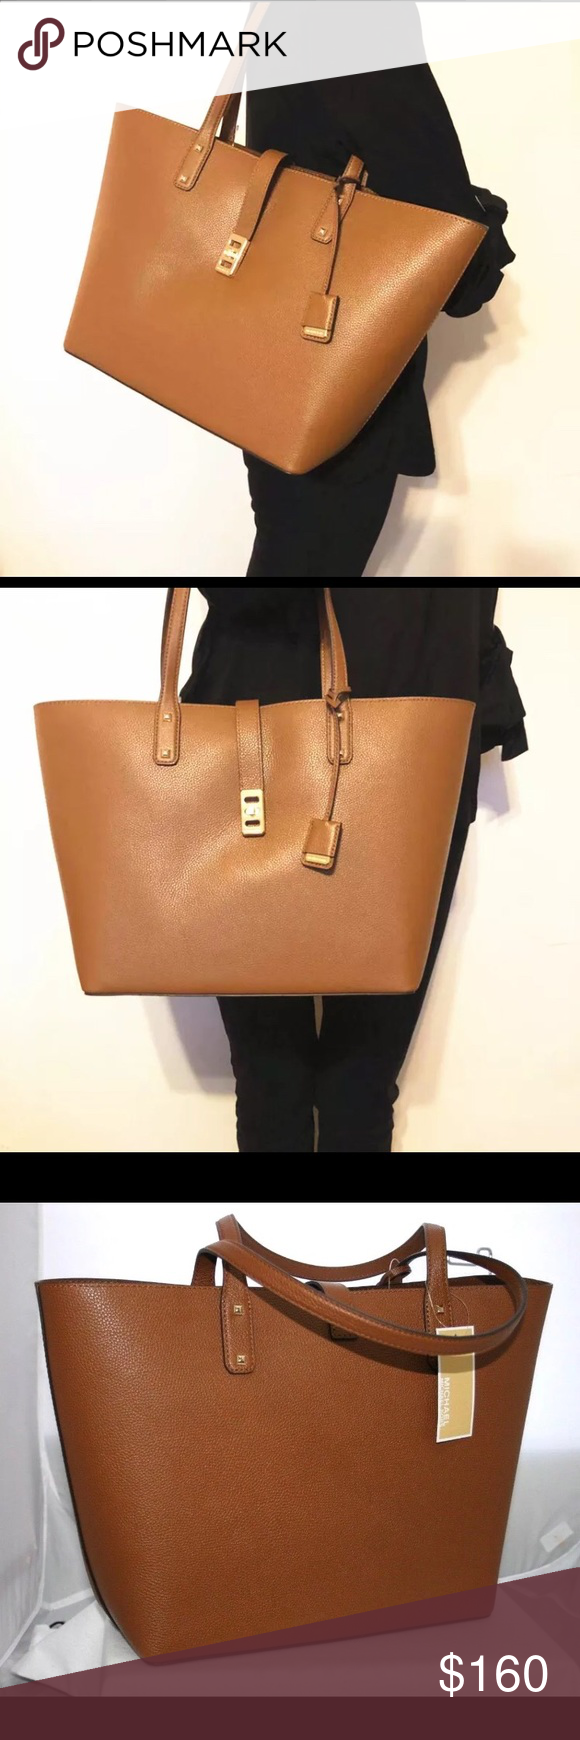 cee0cd216ac9 💕Michael Kors Karson Large Carryall Tote This listing is for one of your  choice Michael Kors Karson Large Carryall Tote Style No.